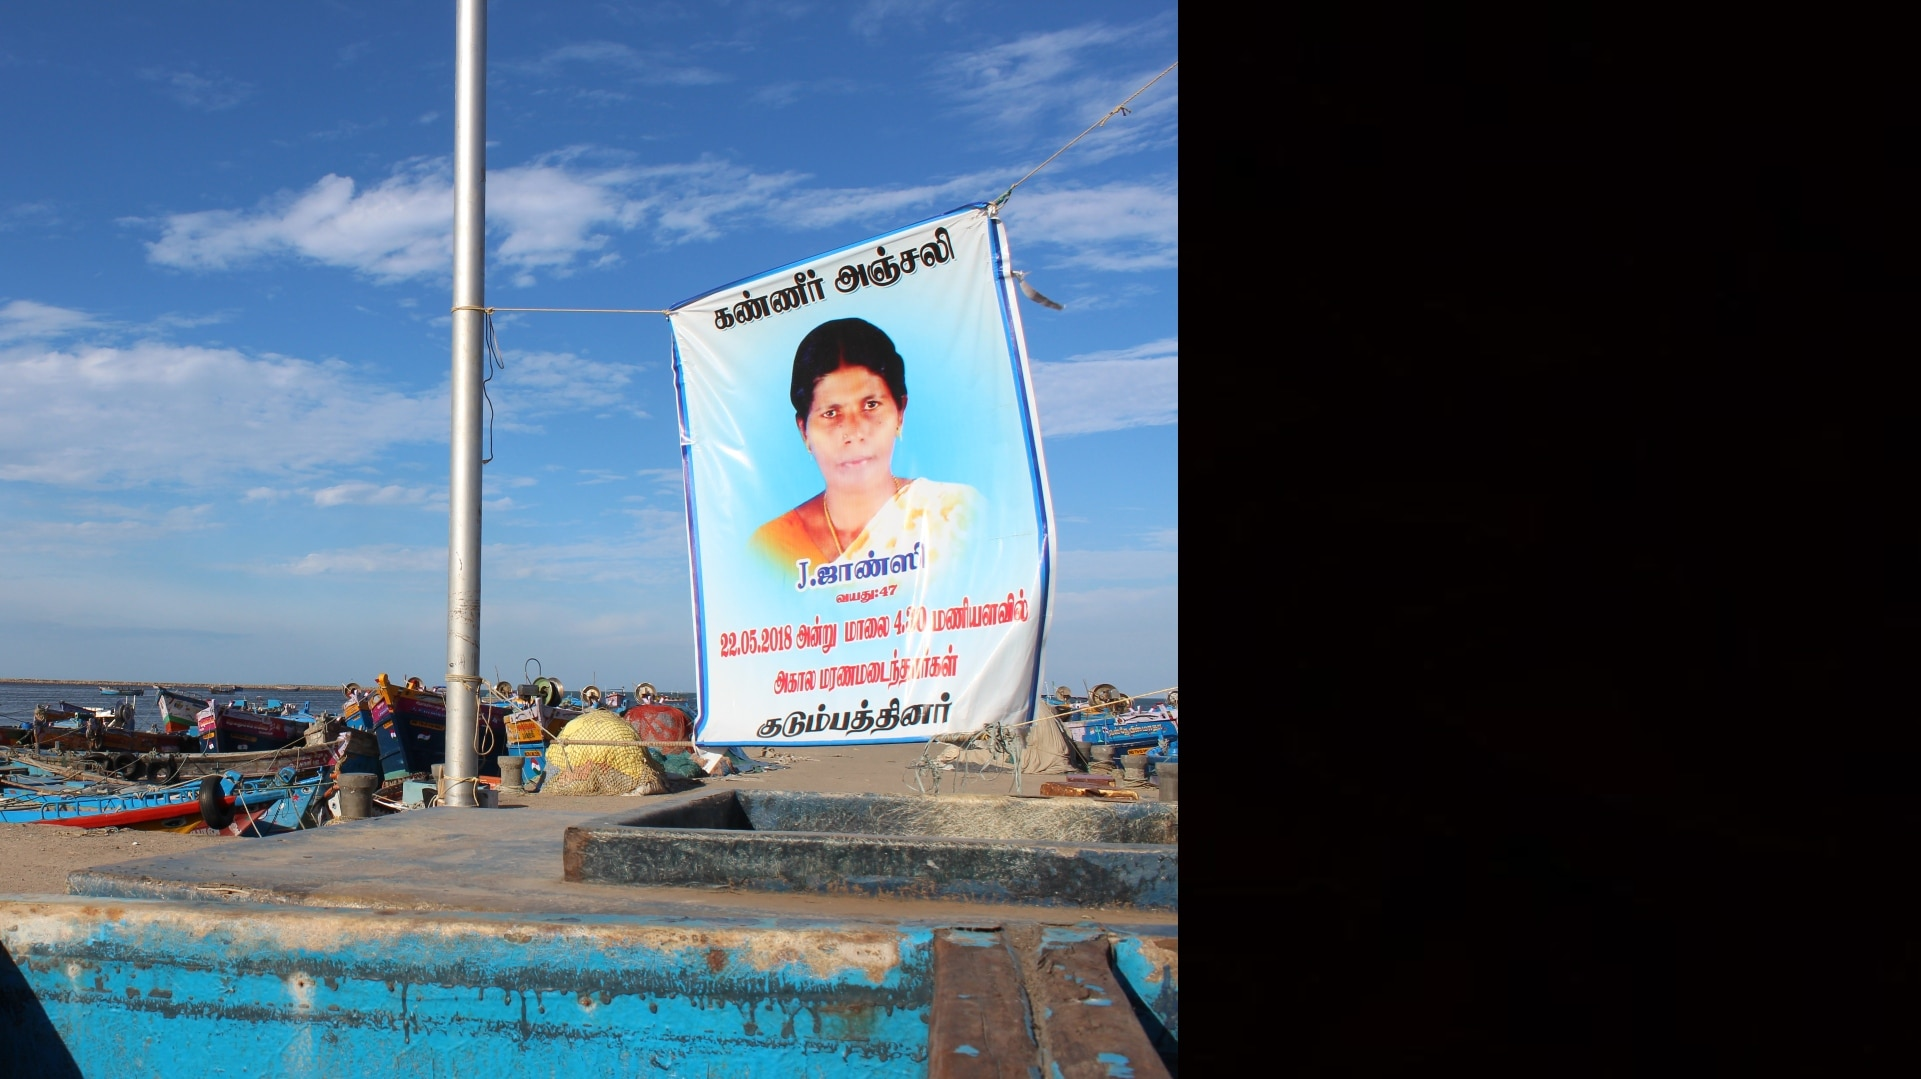 Anatomy of a protest: Thoothukudi remains angry 18 days later